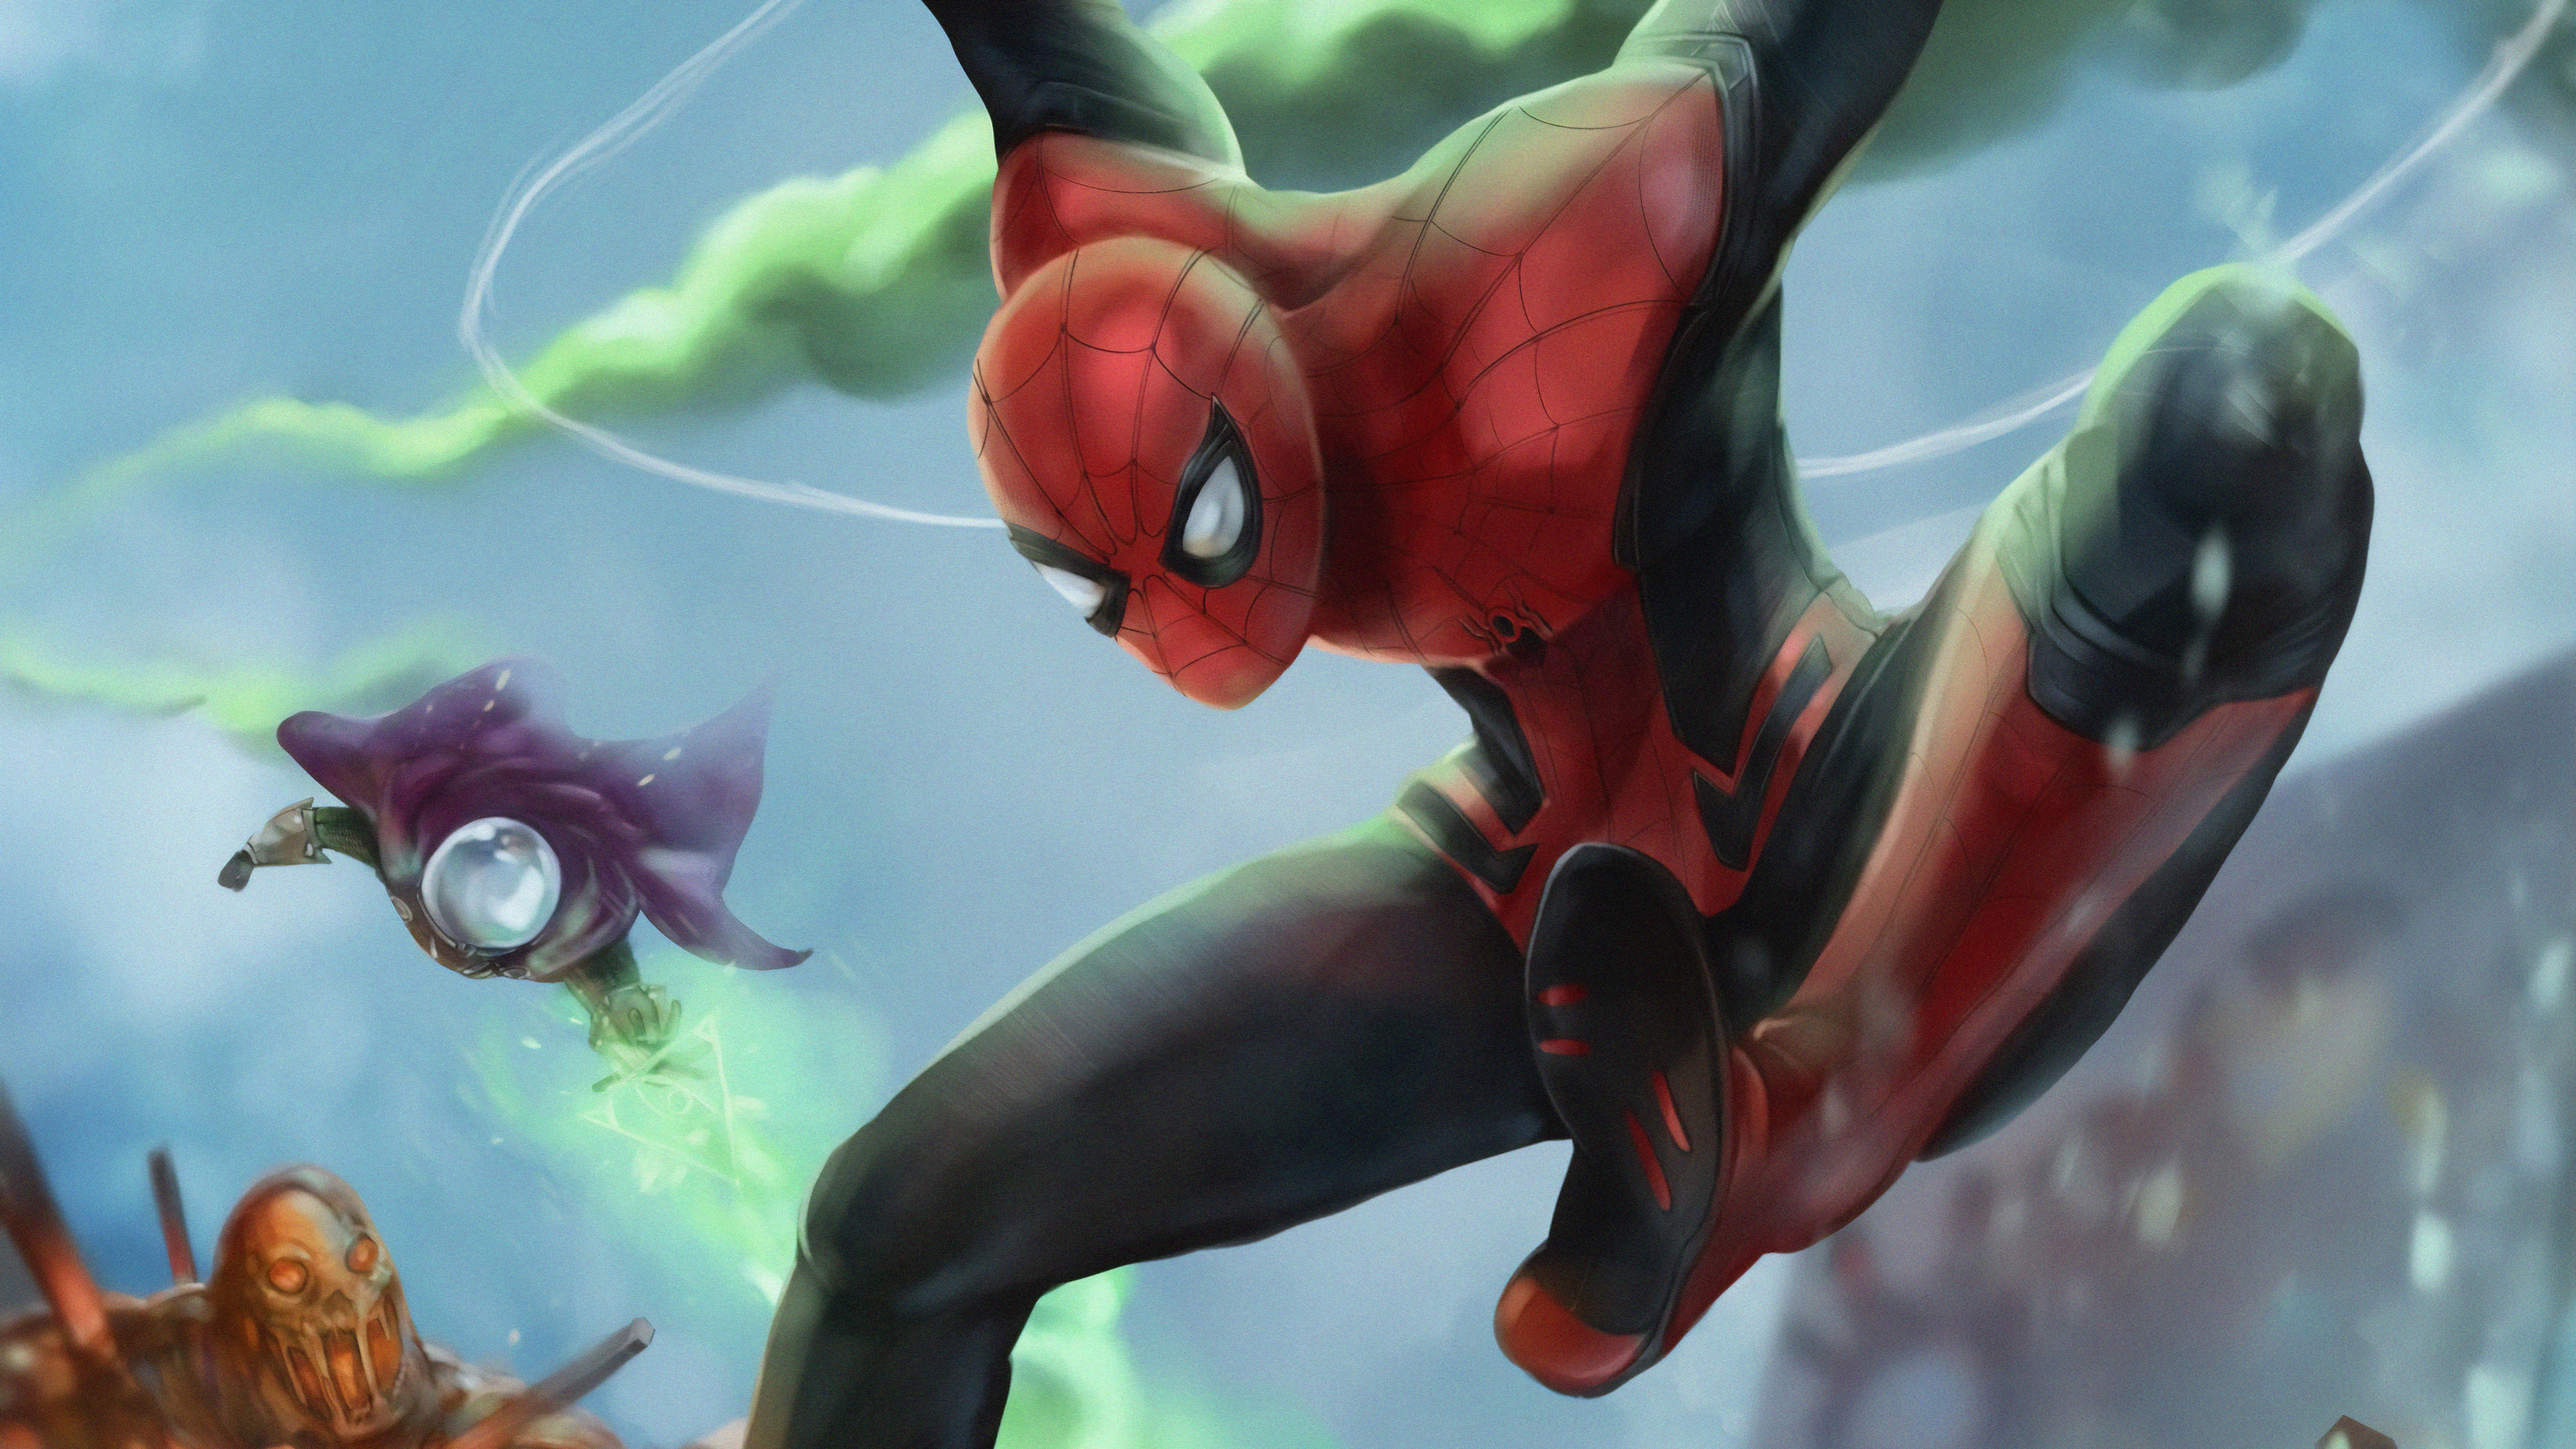 spiderman farfrom home artwork 1563220050 - Spiderman Farfrom Home Artwork - superheroes wallpapers, spiderman wallpapers, spiderman far from home wallpapers, hd-wallpapers, digital art wallpapers, artwork wallpapers, 4k-wallpapers